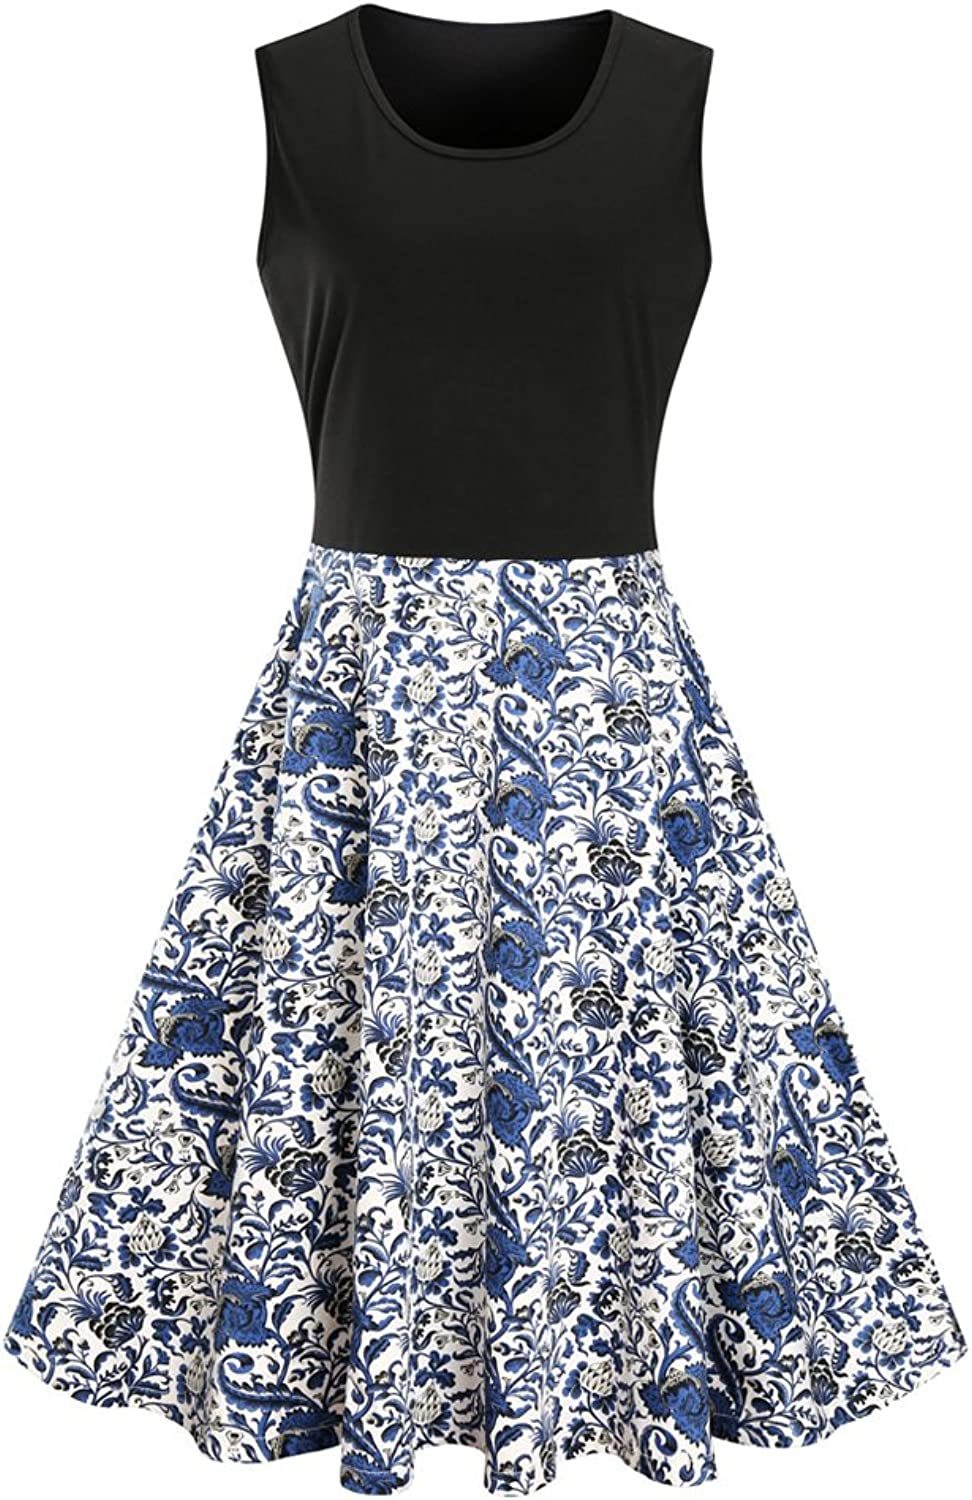 Aibwet Women's Fit and Flare Floral Print Sleeveless Summer Beach ALine Party Evening Cocktail Swing Dress